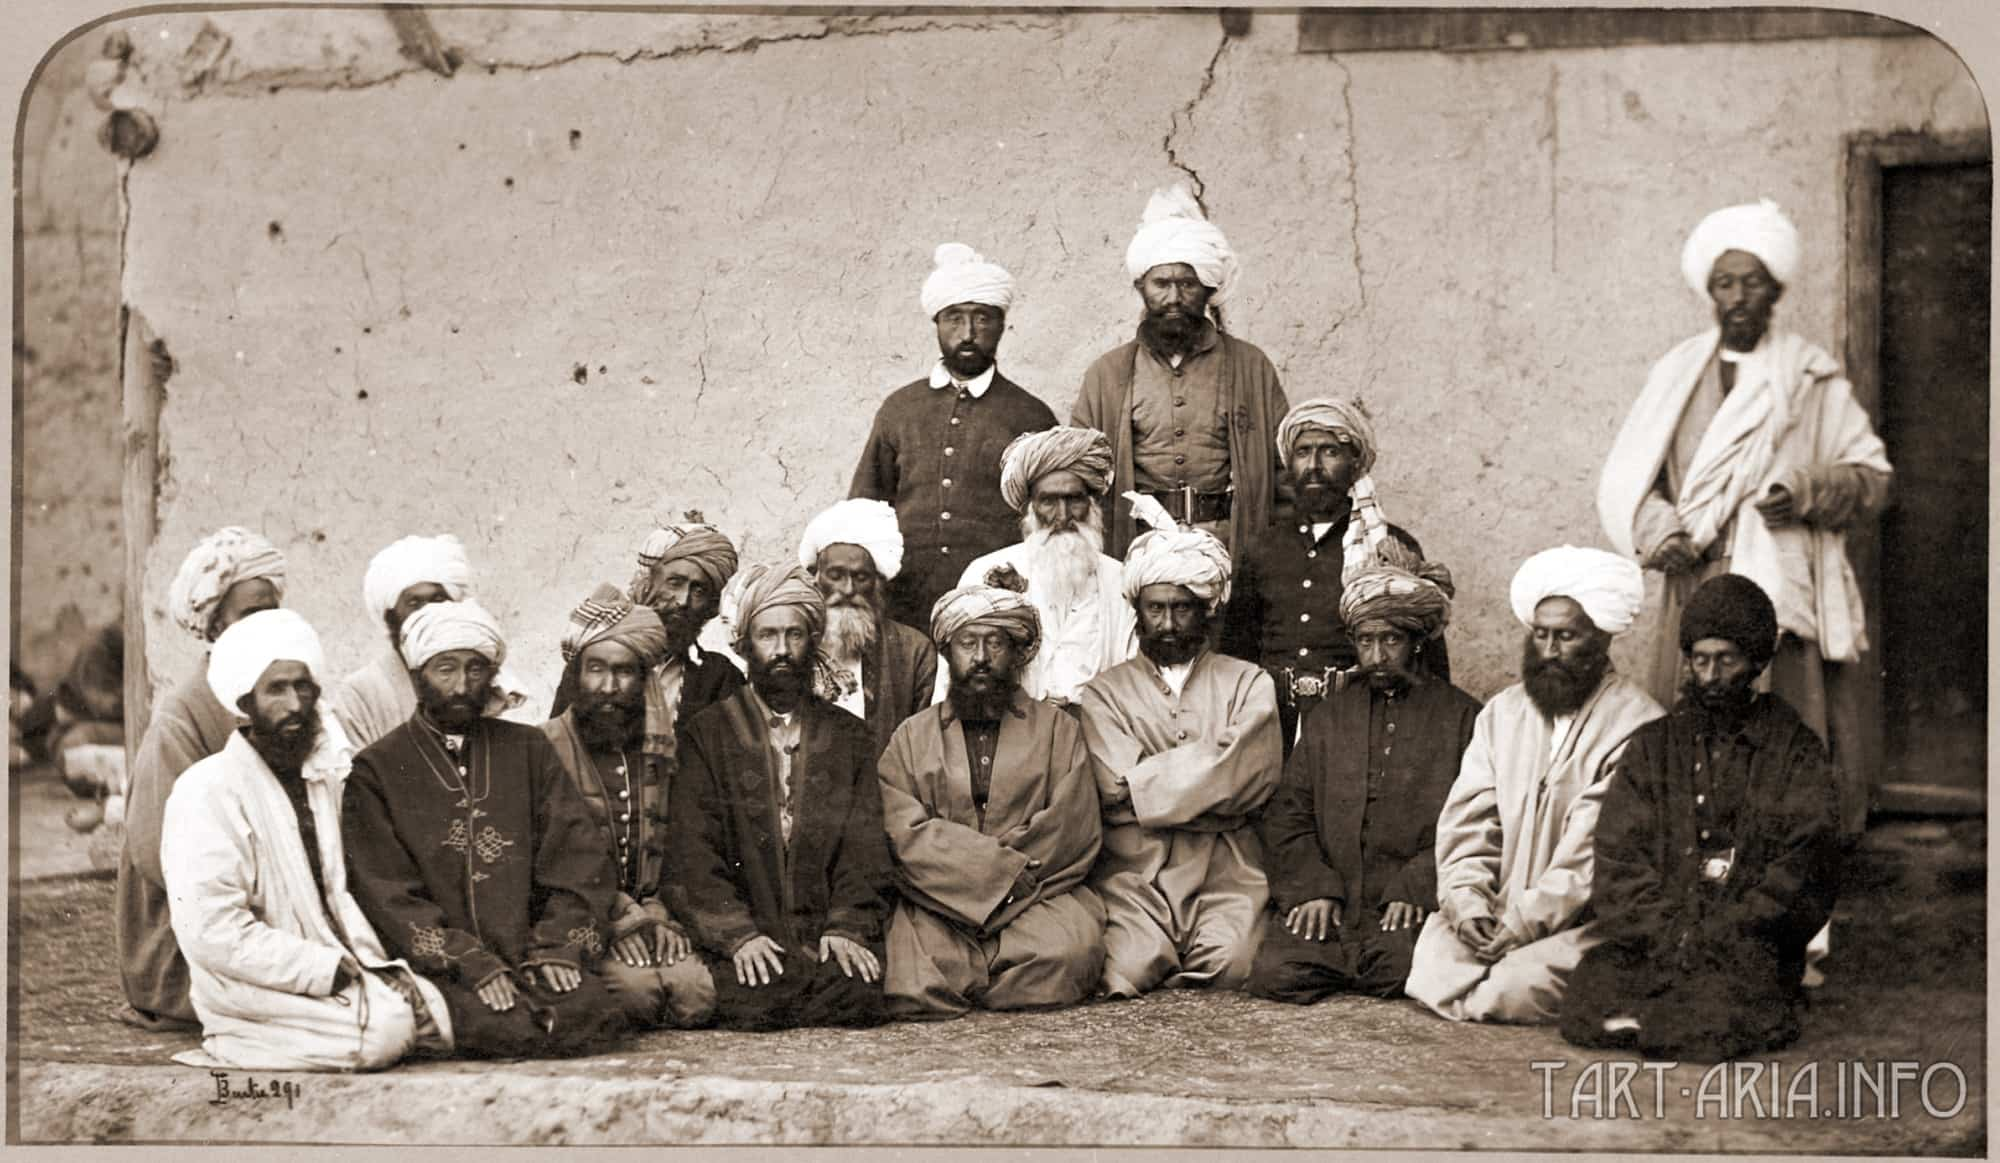 Sirdar Habibullah Gilzai and other Khans in 1879-80